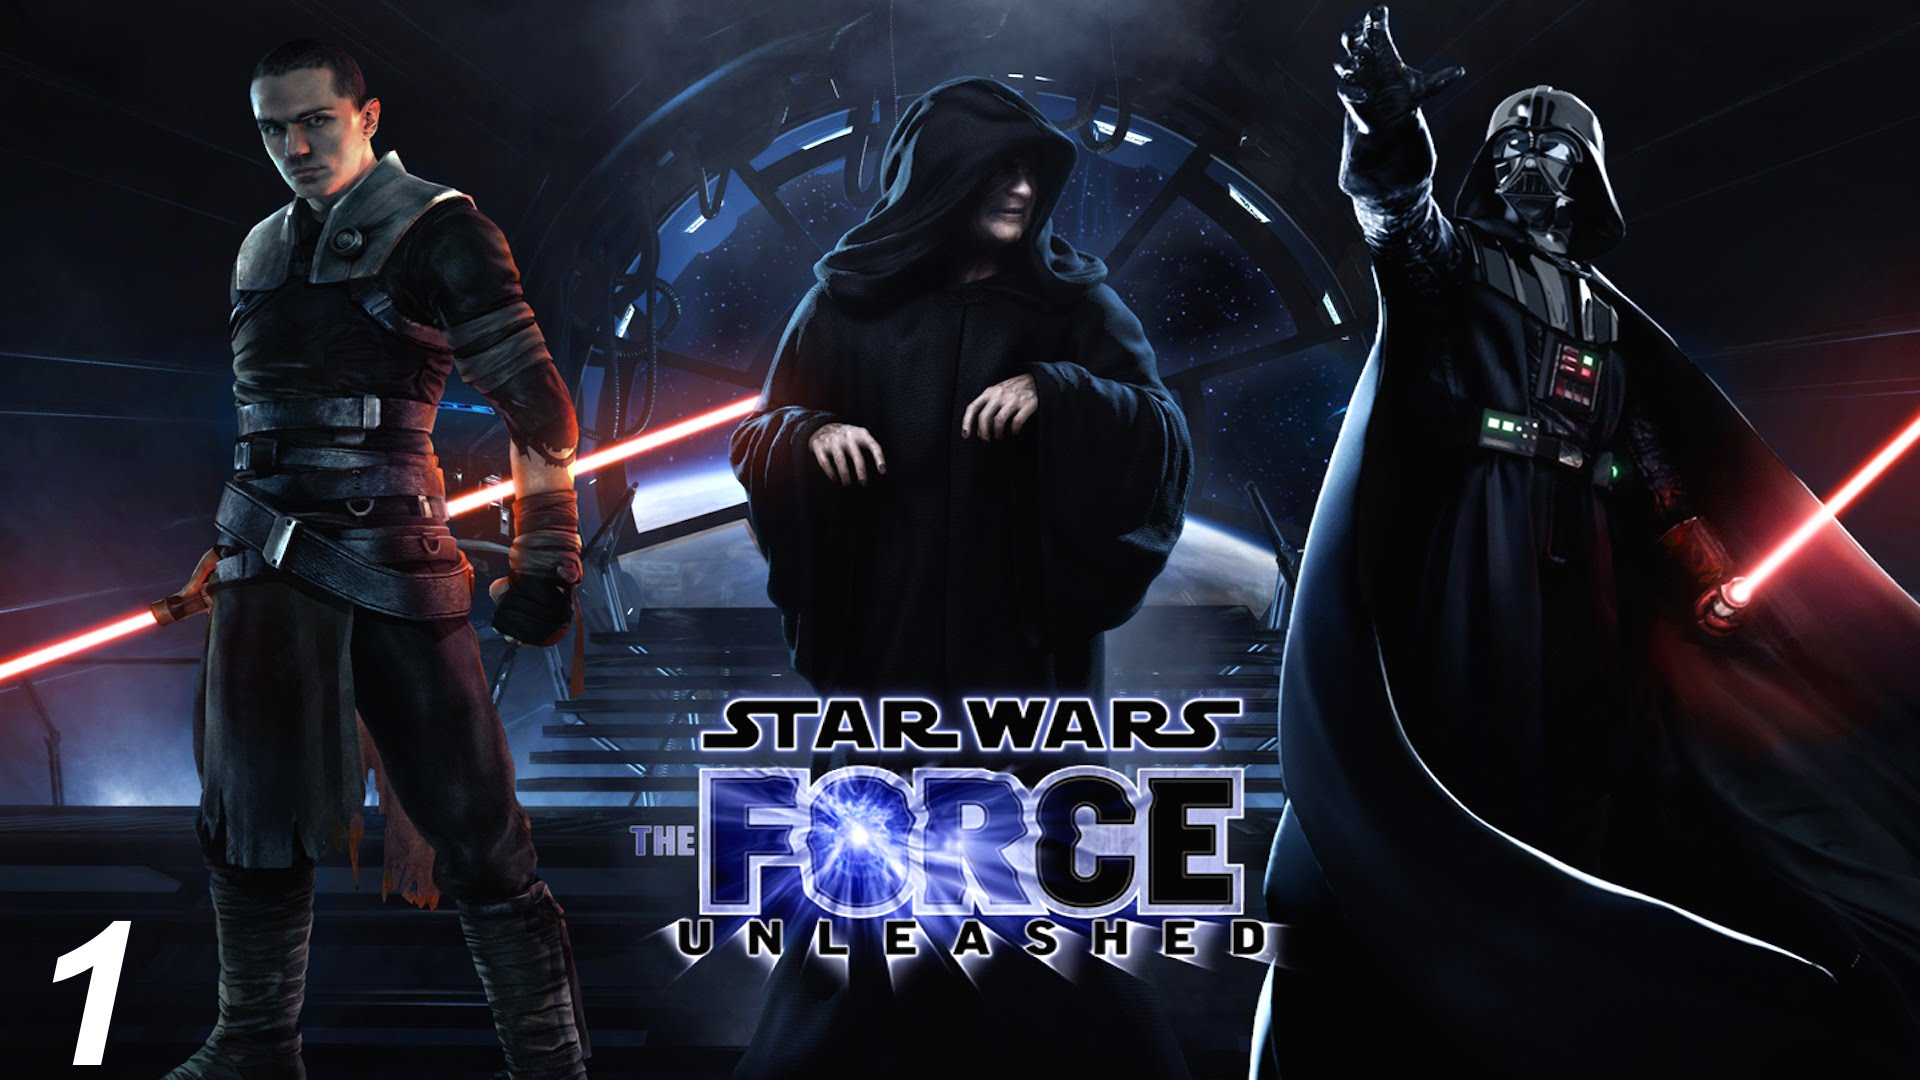 Star Wars The Force Unleashed Wallpapers Video Game Hq Star